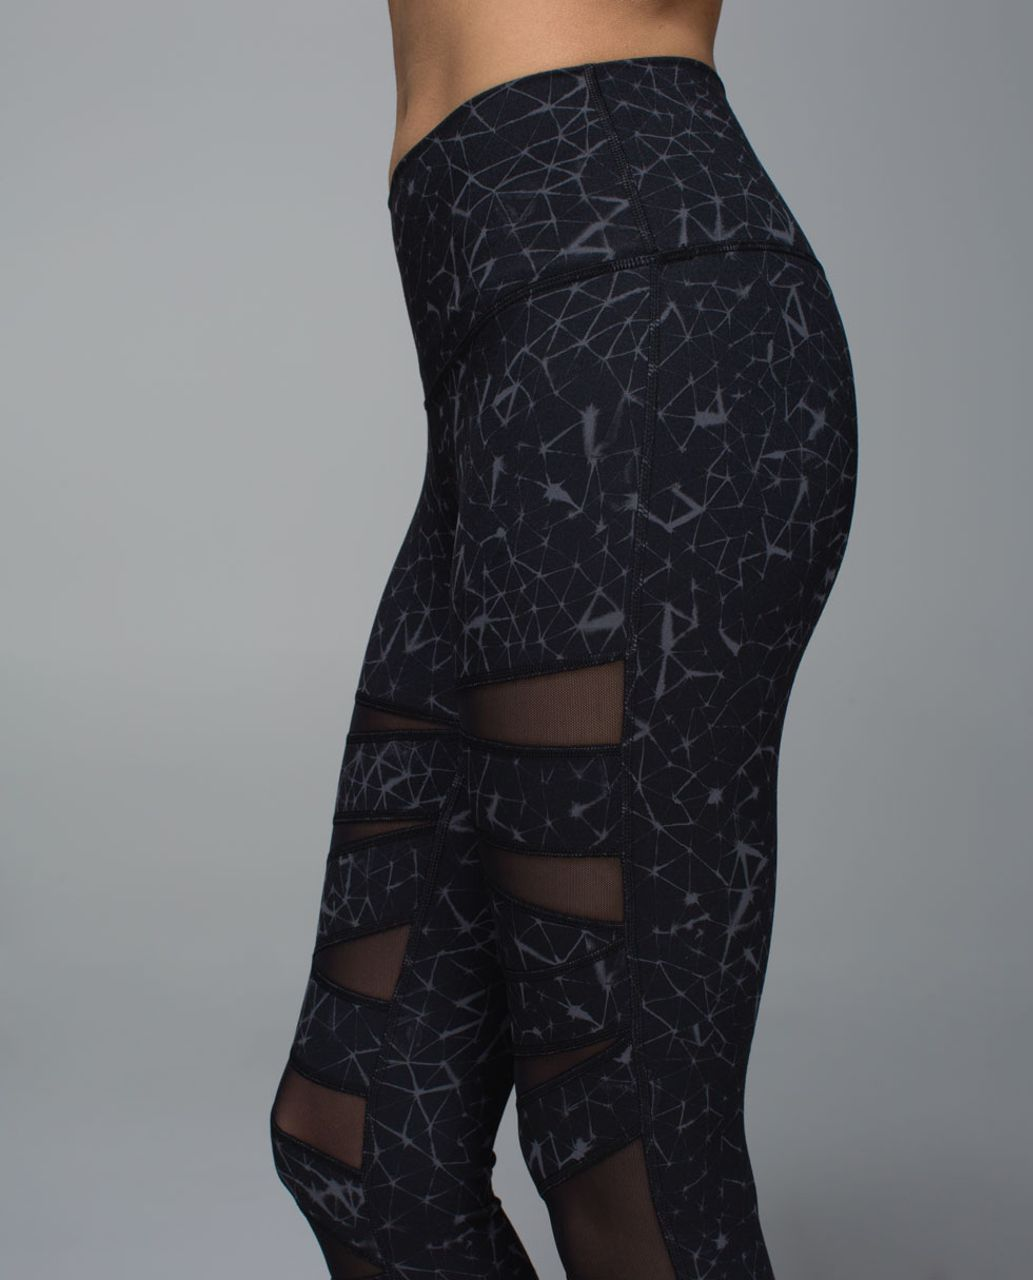 Lululemon High Times Pant *Full-On Luon (Mesh) - Star Crushed Coal Black / Black